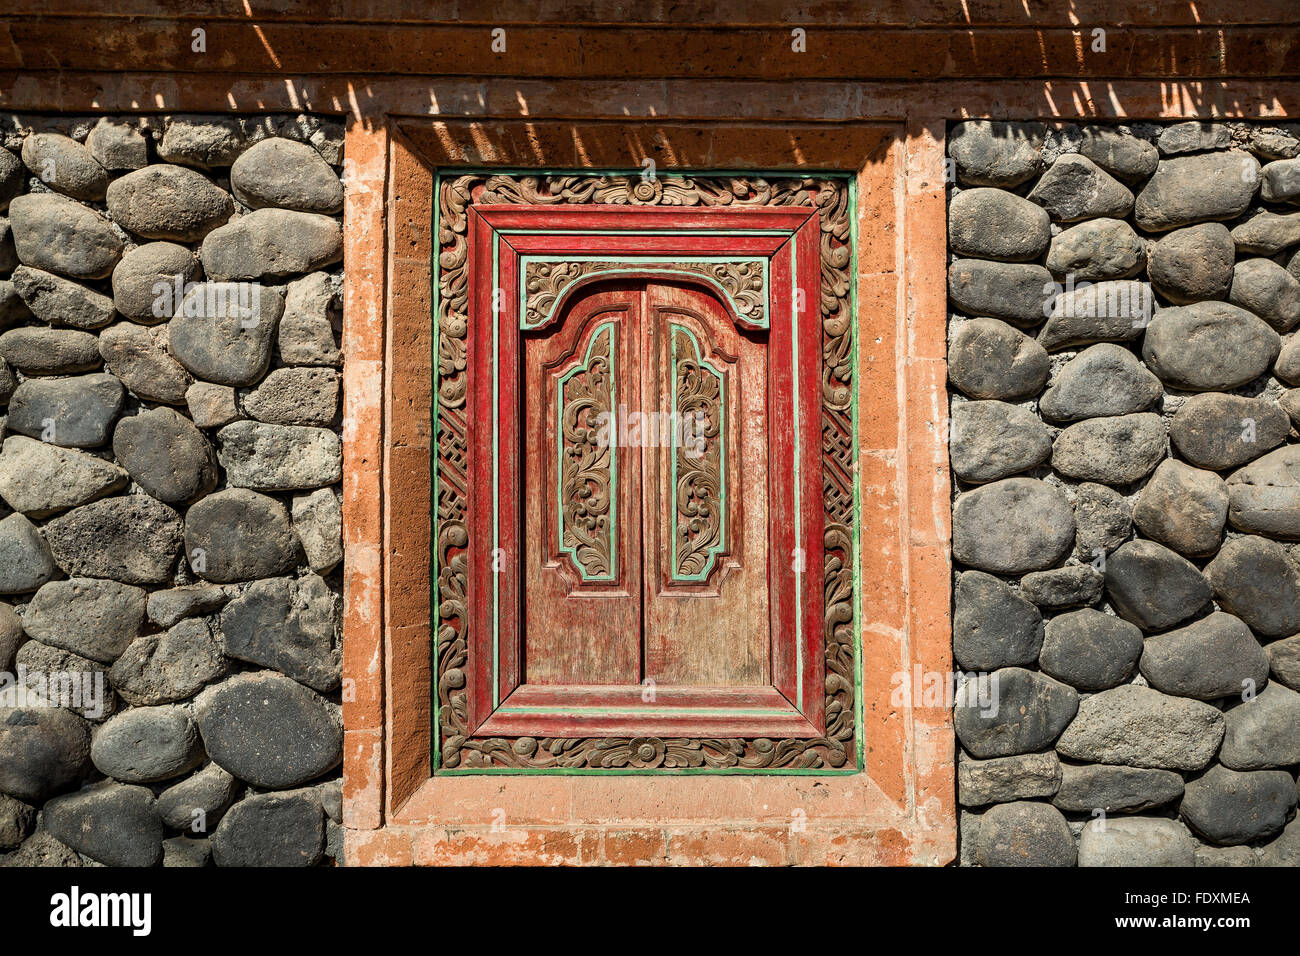 Bali Ethnic wooden crafted window - Stock Image